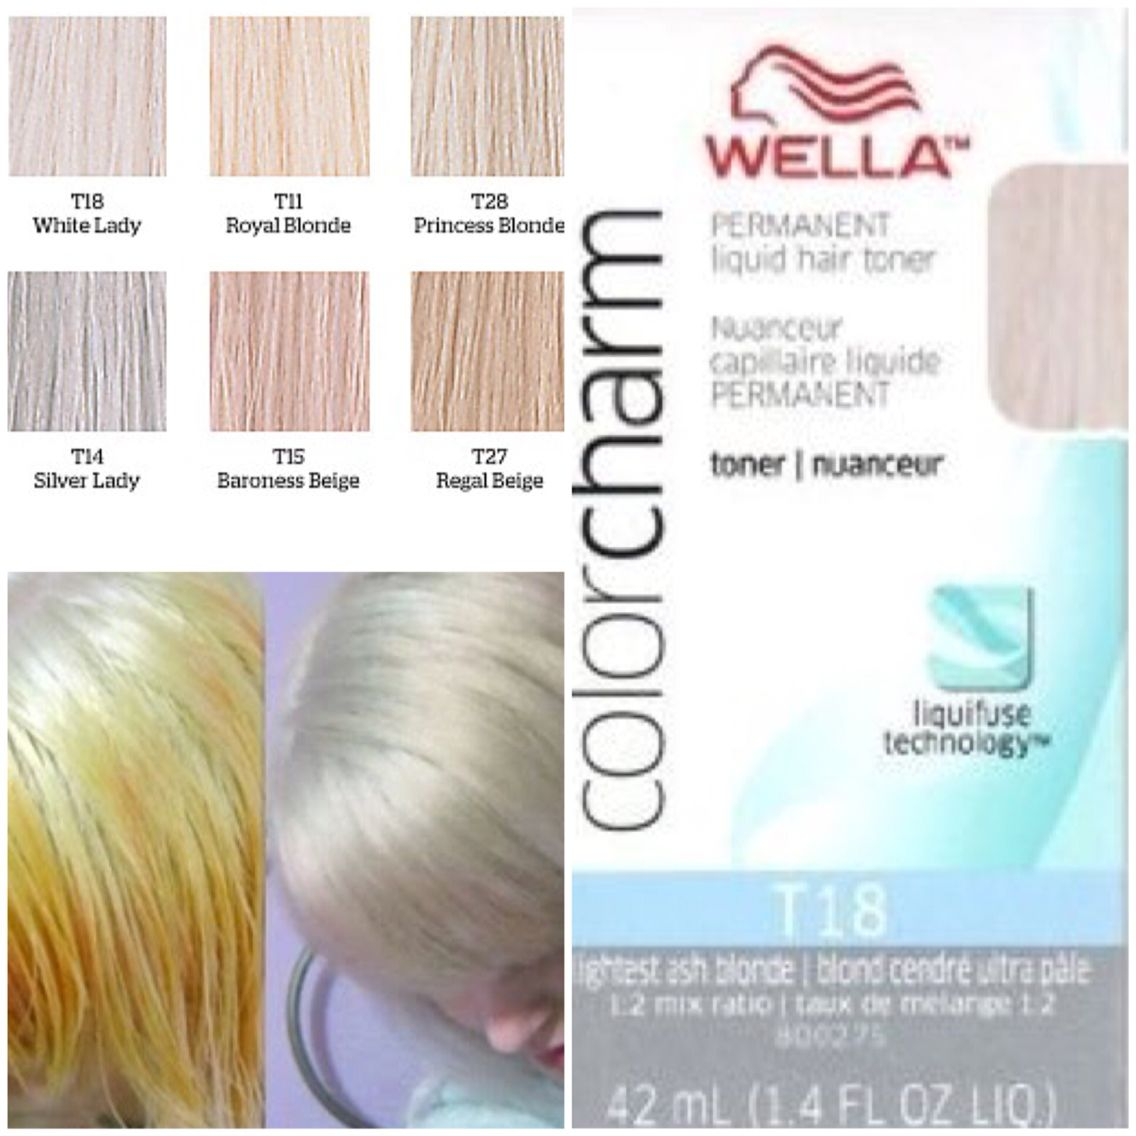 Wella T 18 Toner For Blondeplatinum Hair Pre Lighten The Hair With